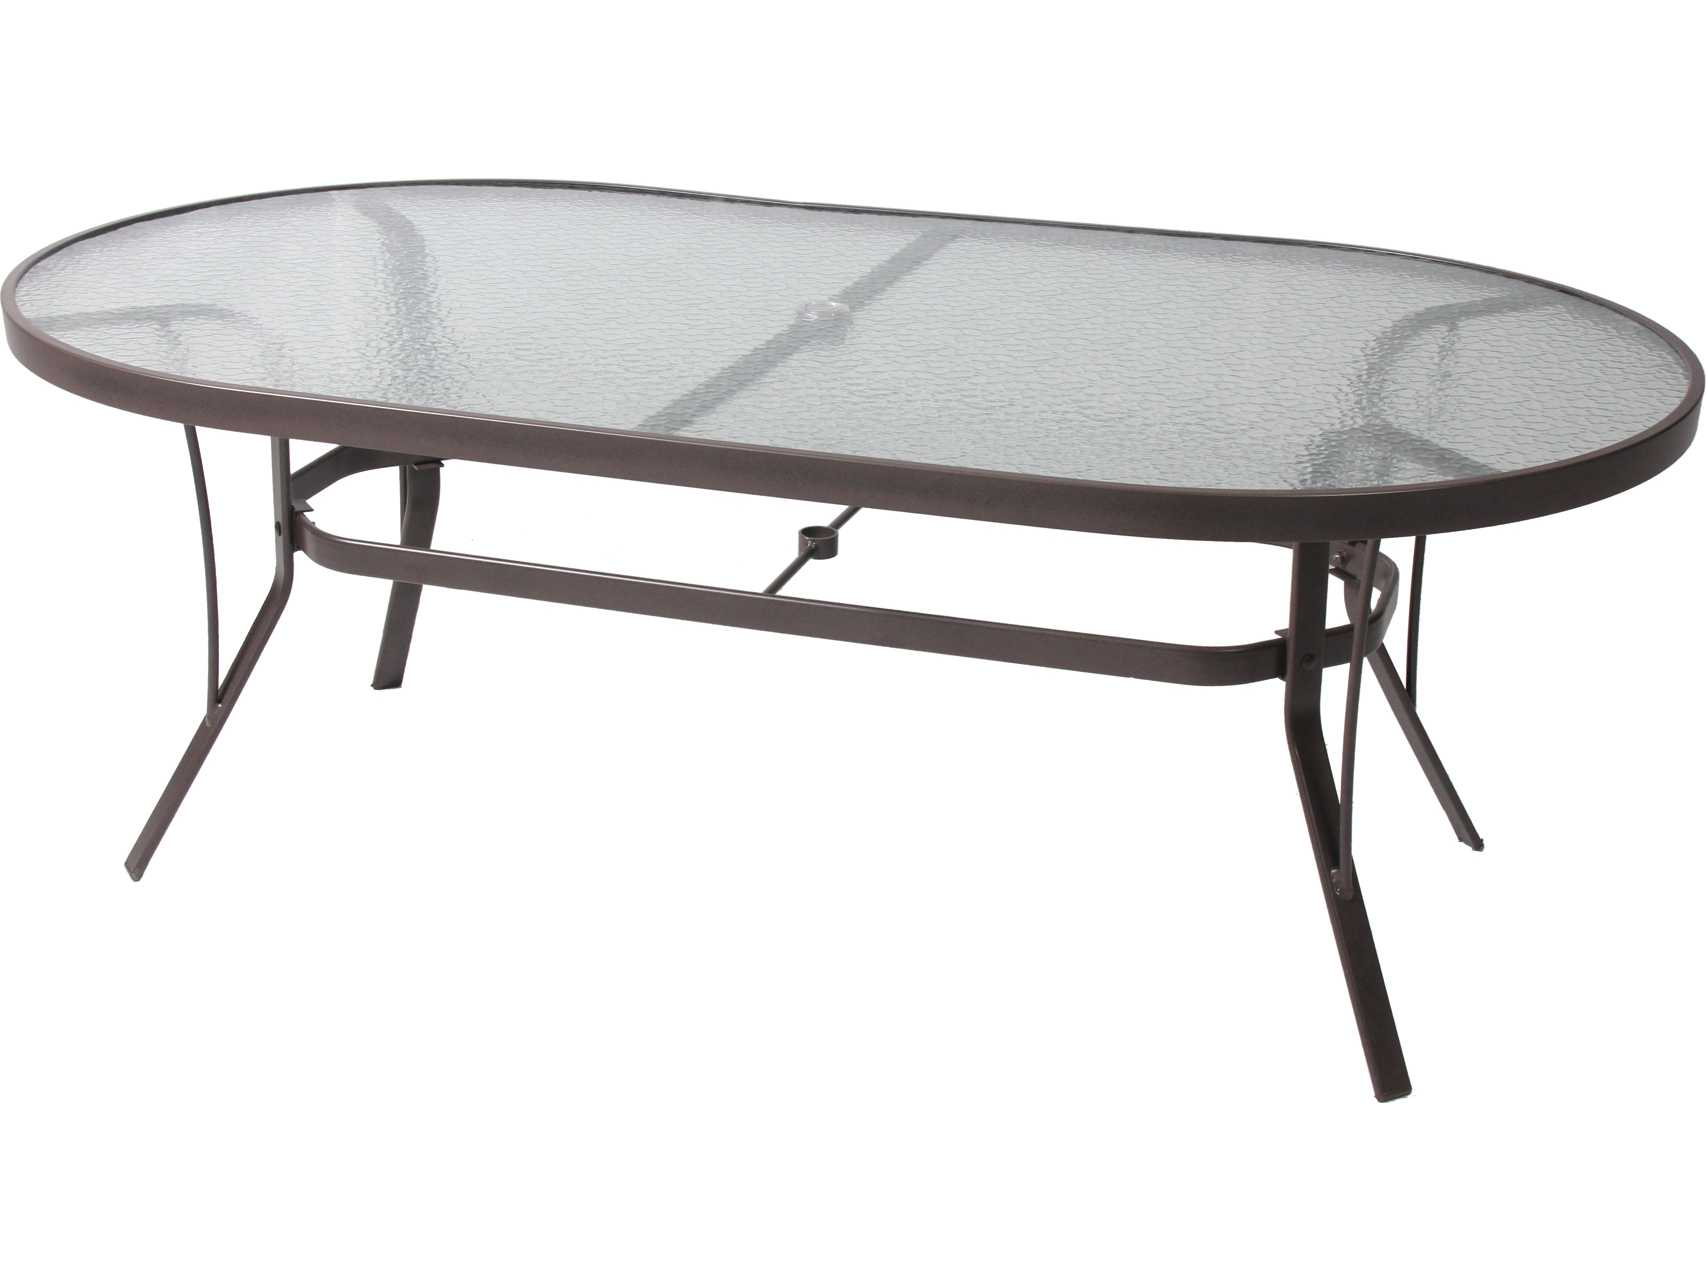 Suncoast cast aluminum 76 39 39 x 42 39 39 oval glass top dining for Oval glass dining table